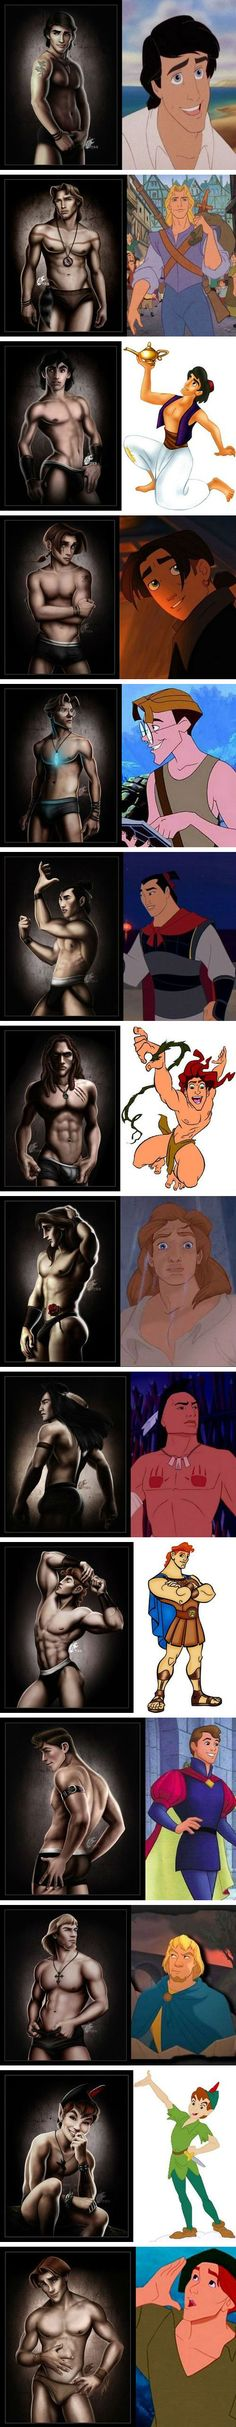 If Disney princes were underwear models.